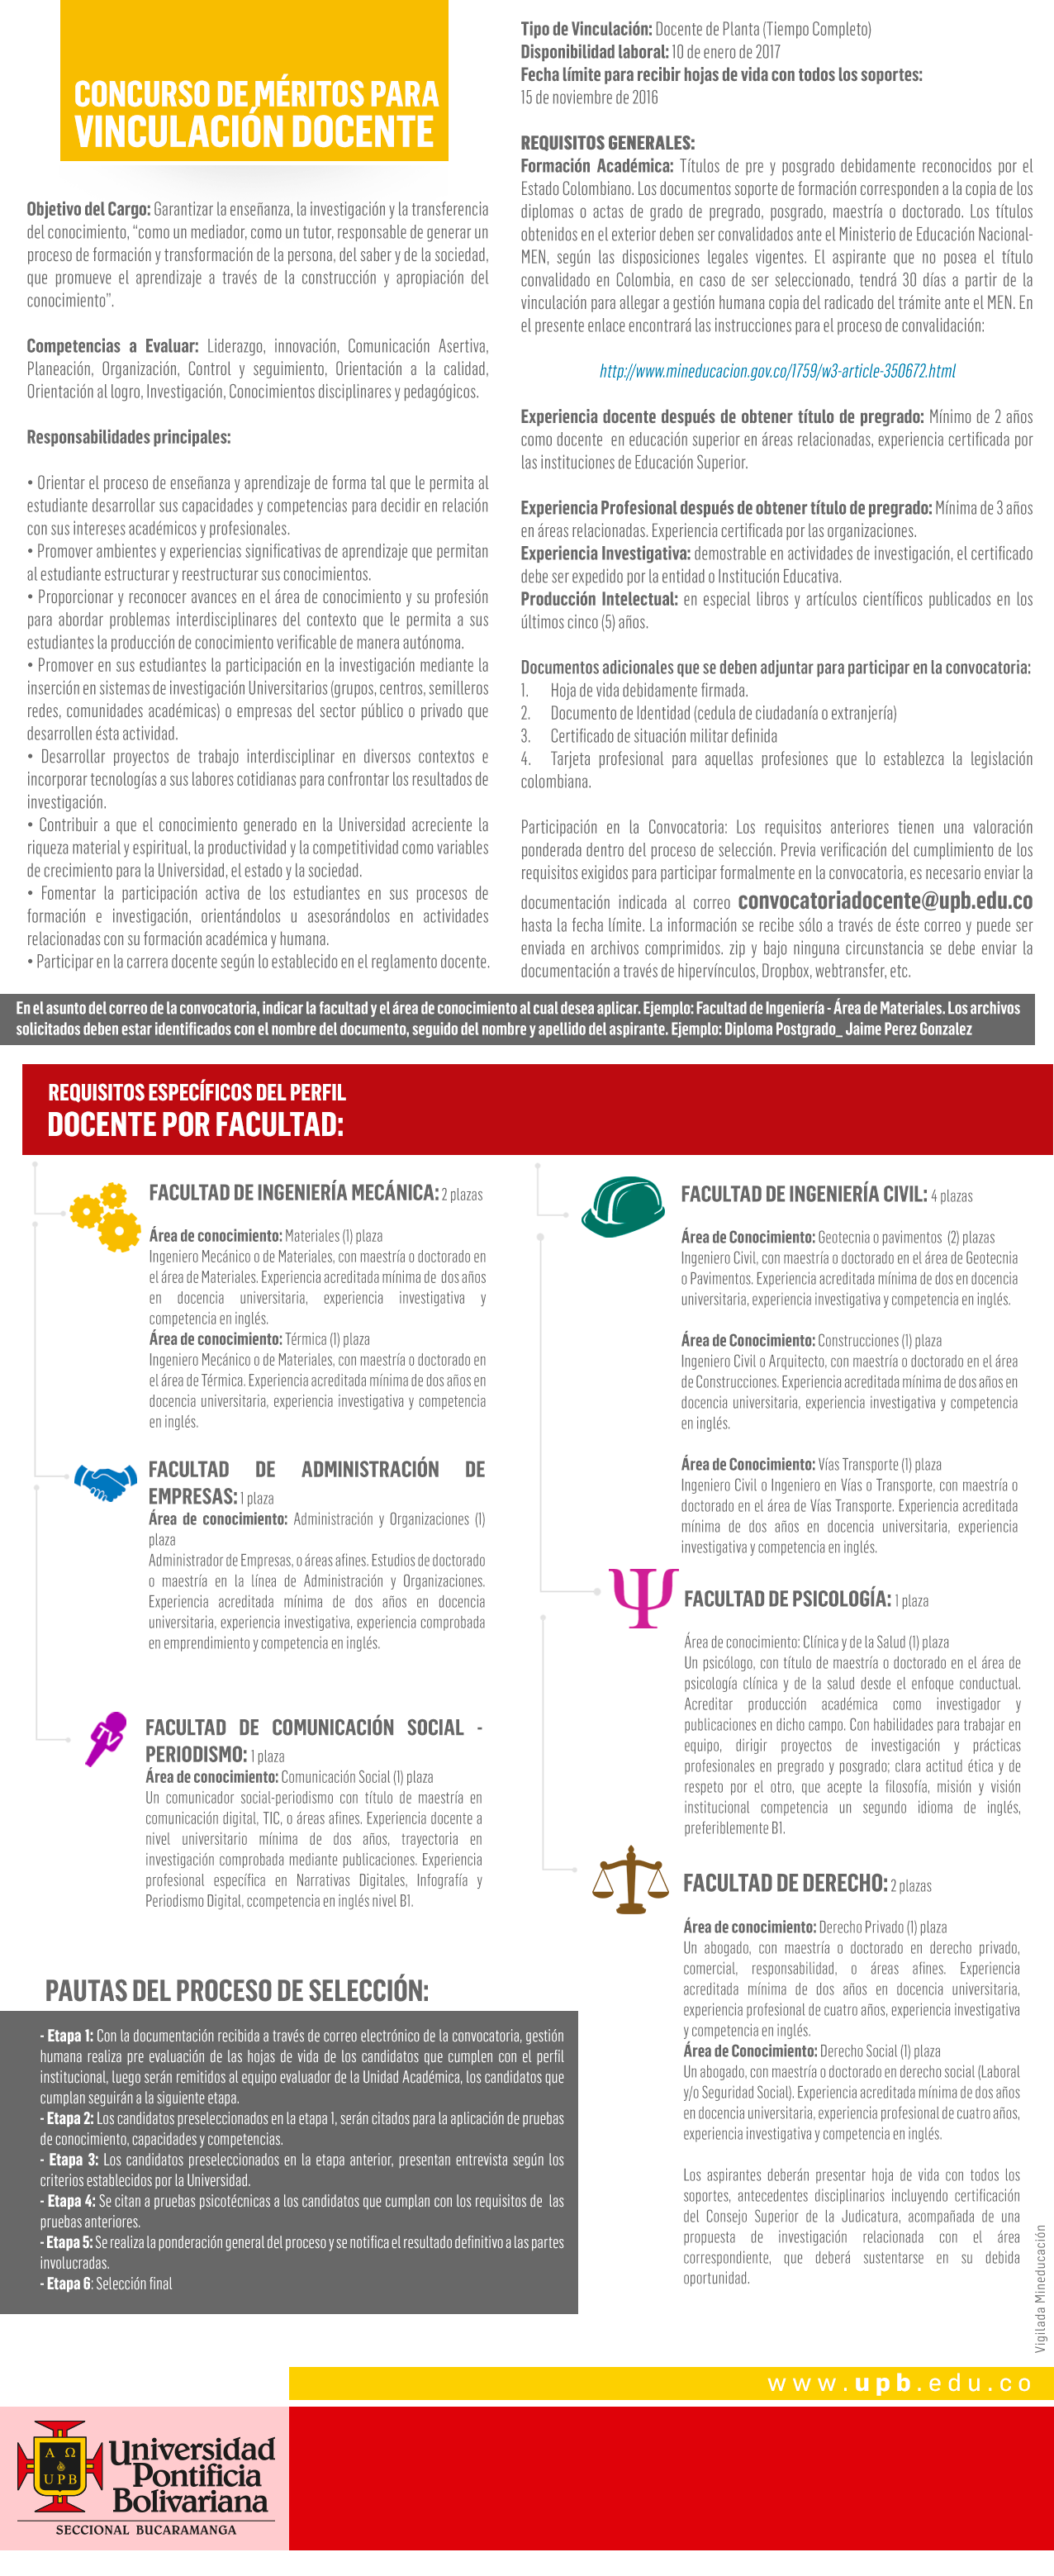 Convocatoria docente universidad pontificia bolivariana for Convocatoria de docentes 2016